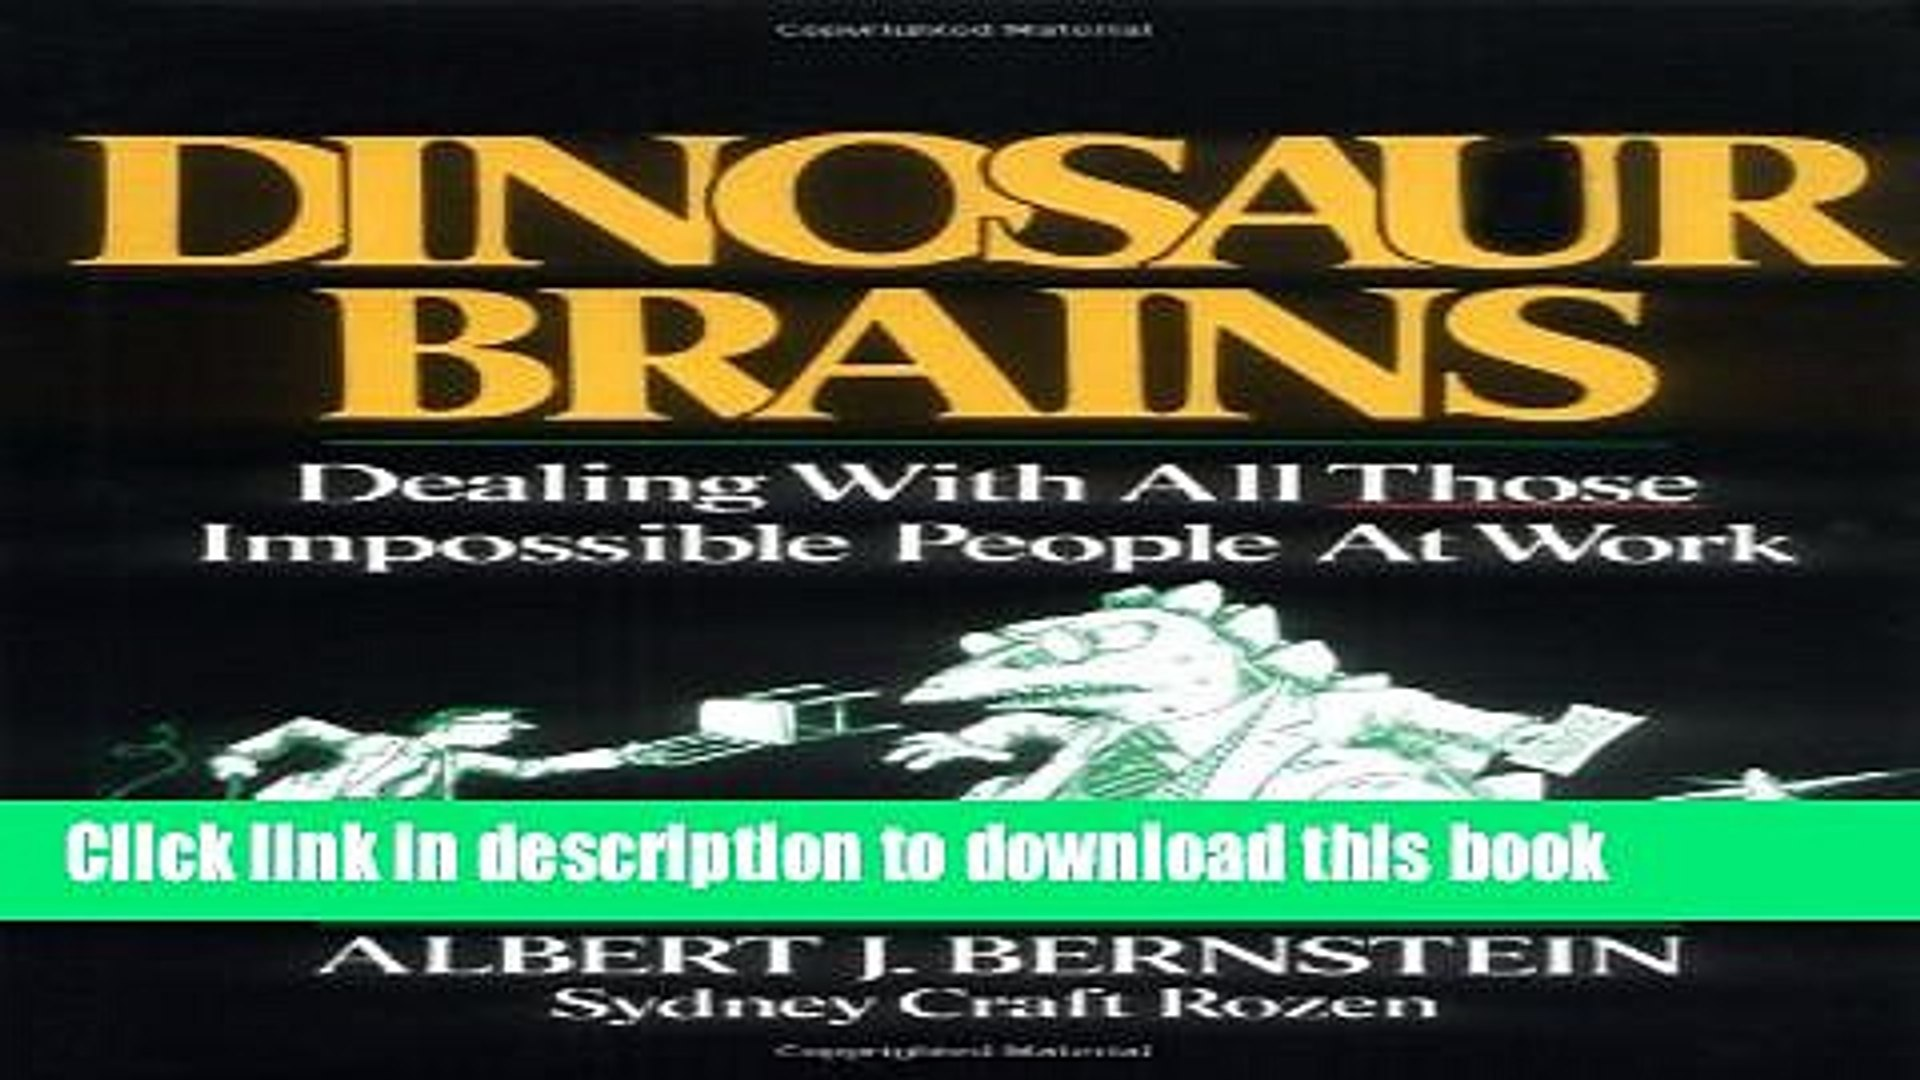 Popular Dinosaur Brains Dealing With All Those Impossible People At Work Kindle Free Video Dailymotion